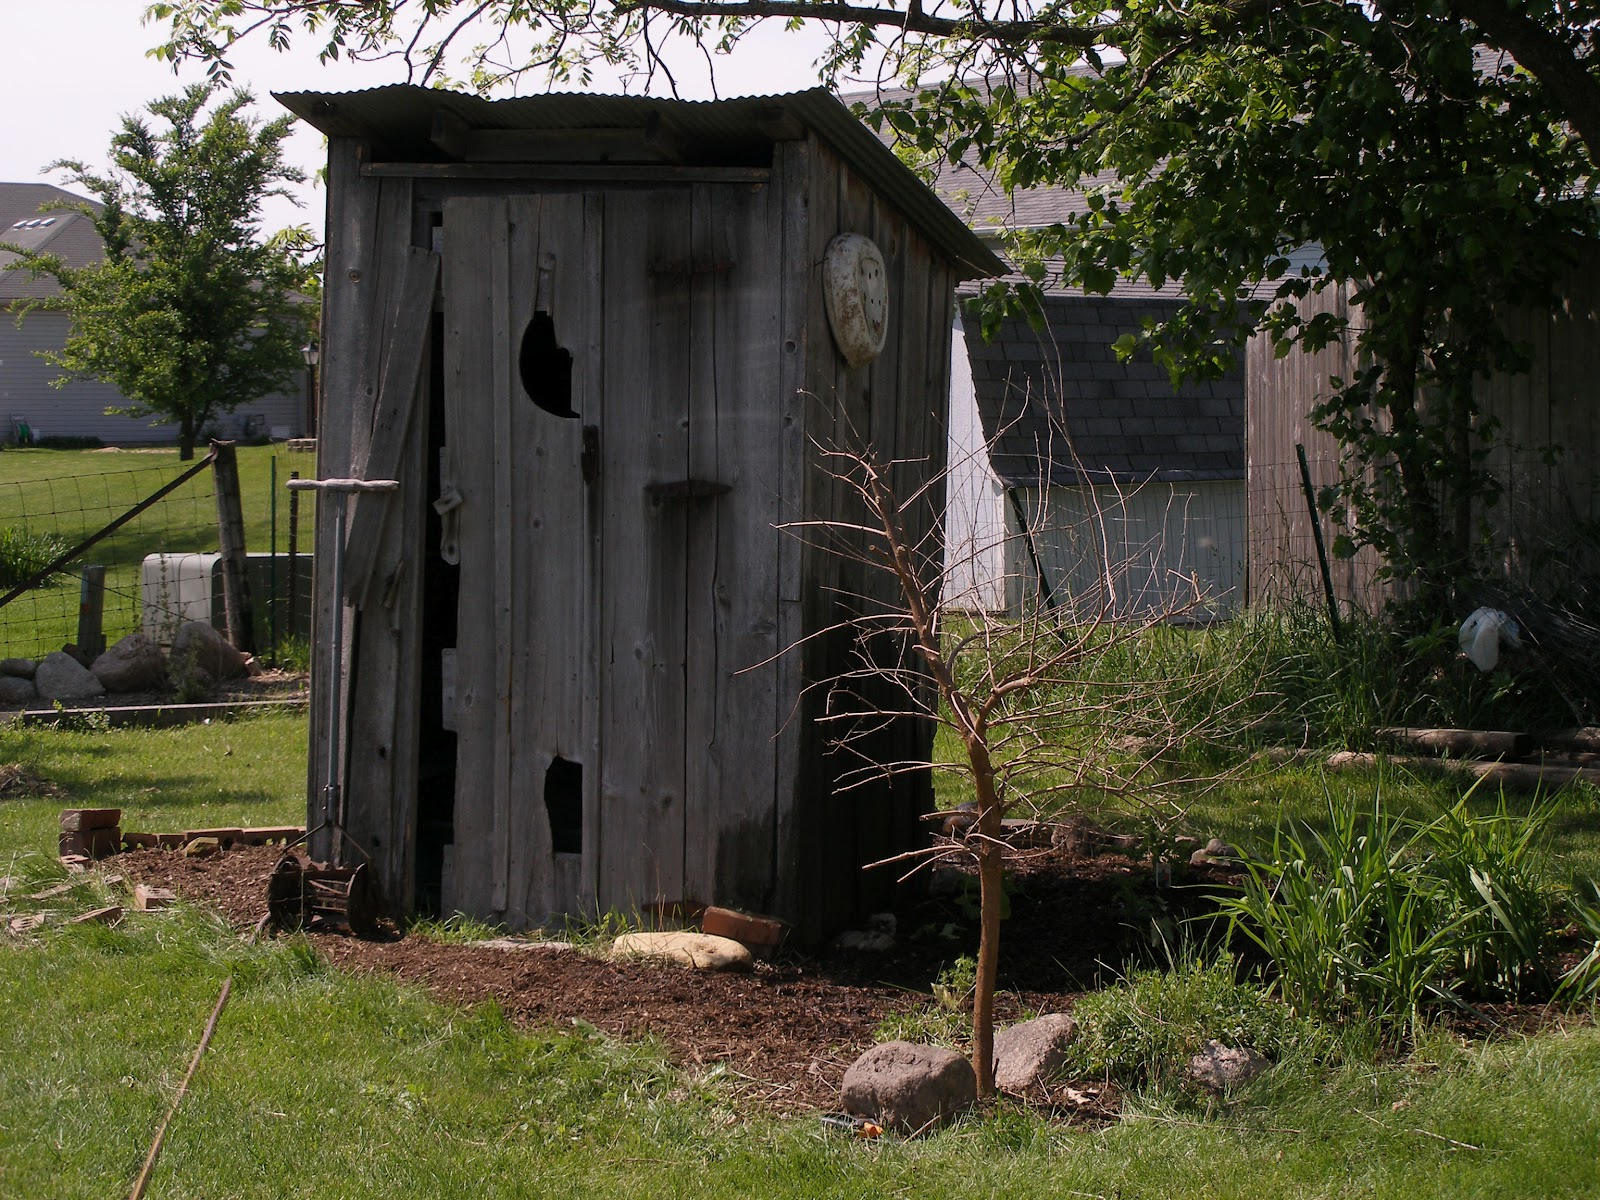 The Stone House Primitives: The Outhouse Garden